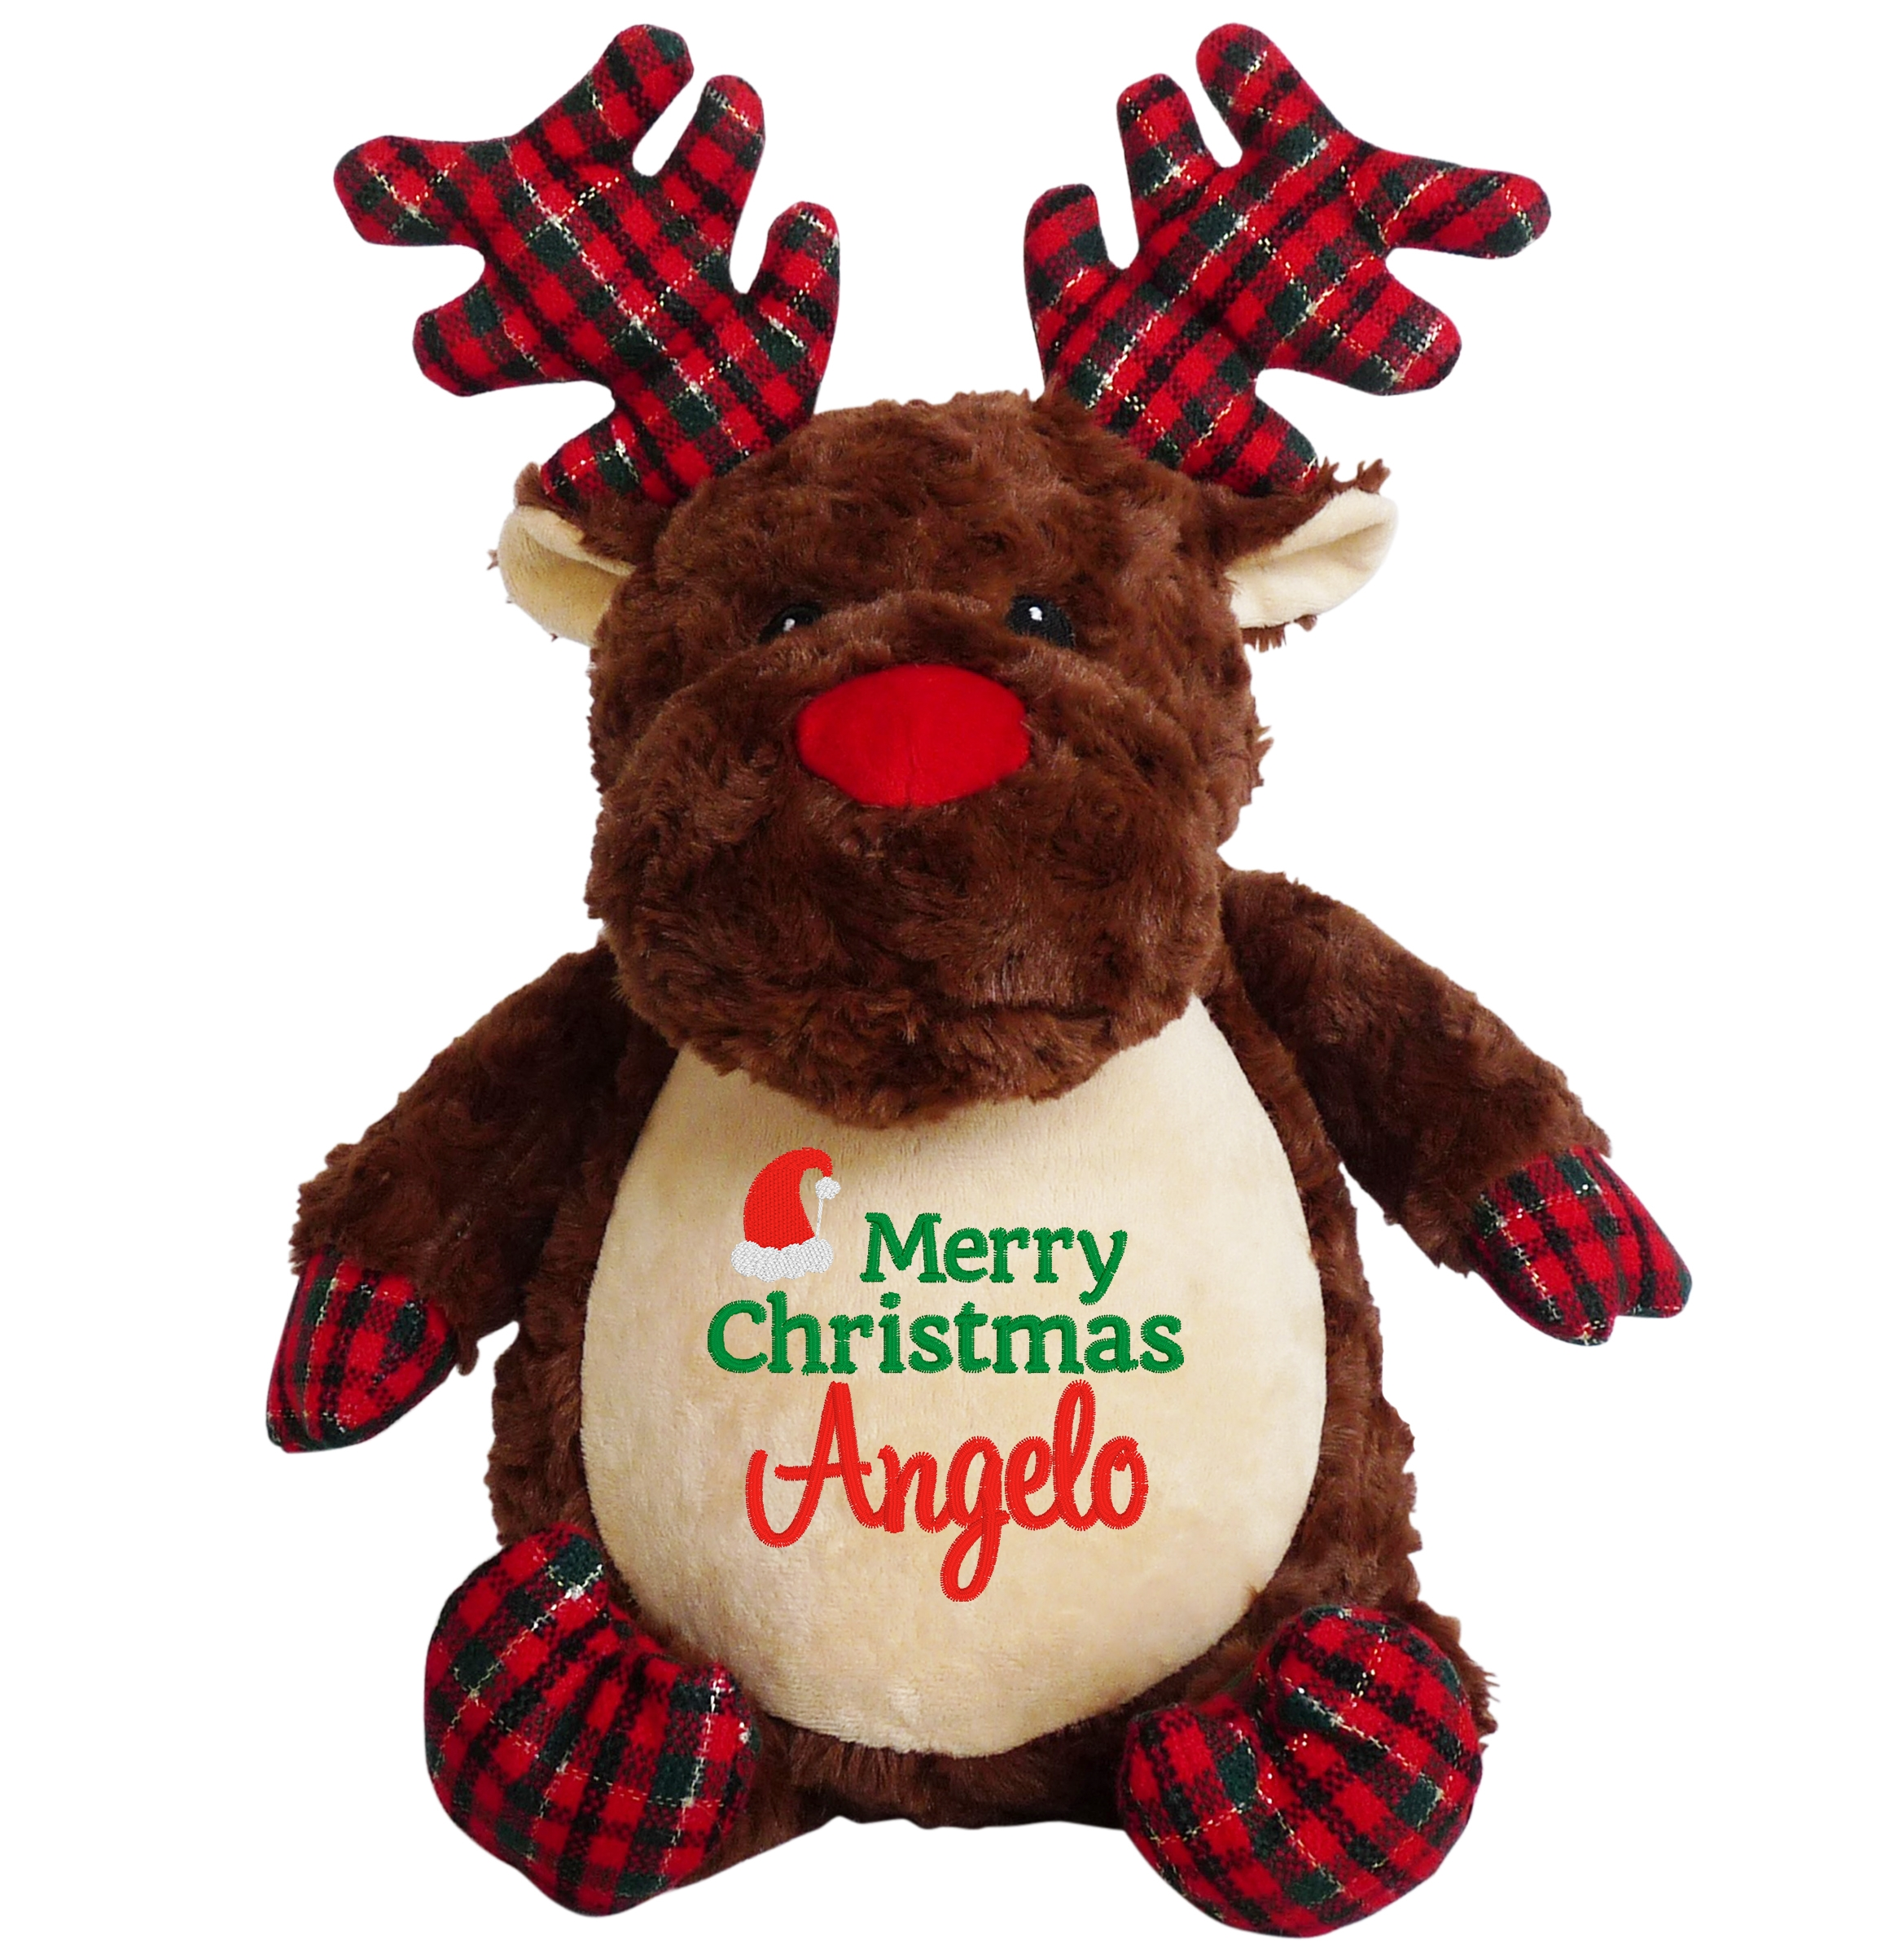 This+is+an+image+of+a+Prancer+Teddy+Merry+Christmas+Gift+from+My+Teddy